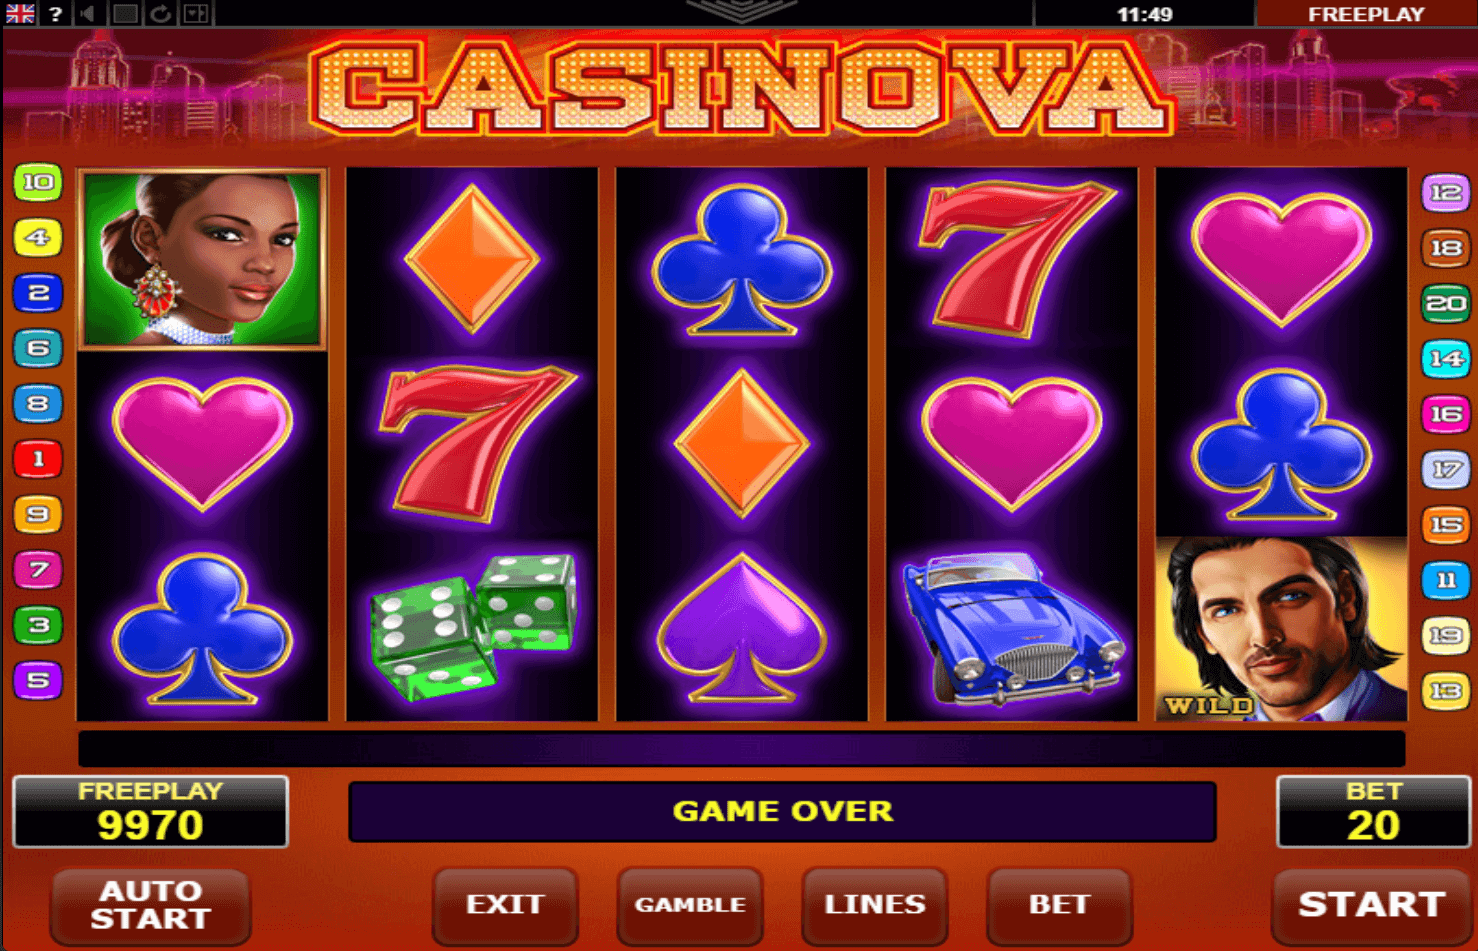 Play At Online Casinos - About Online Casino Bonuses